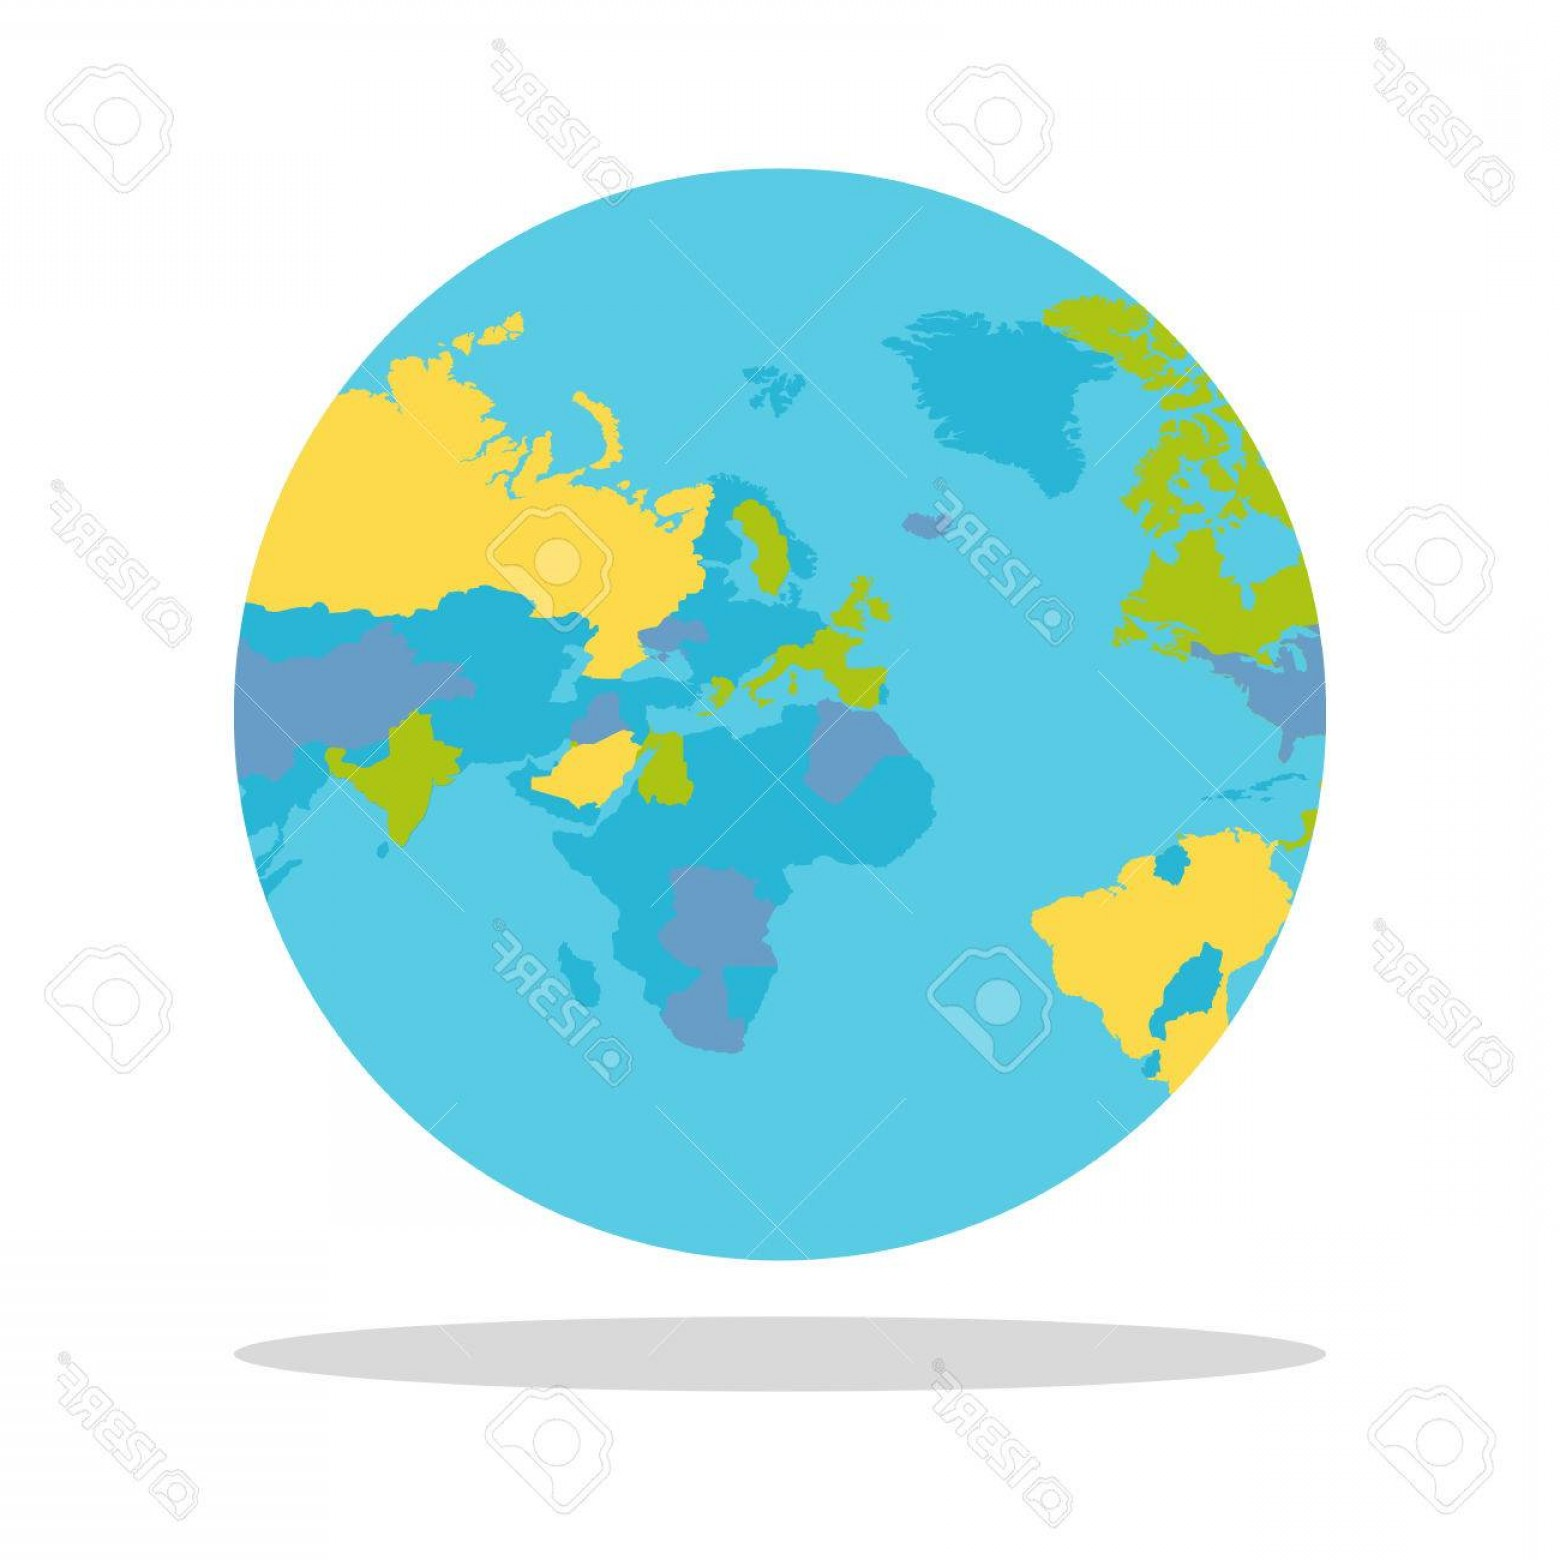 1560x1560 Photostock Vector Planet Earth Vector Illustration World Globe